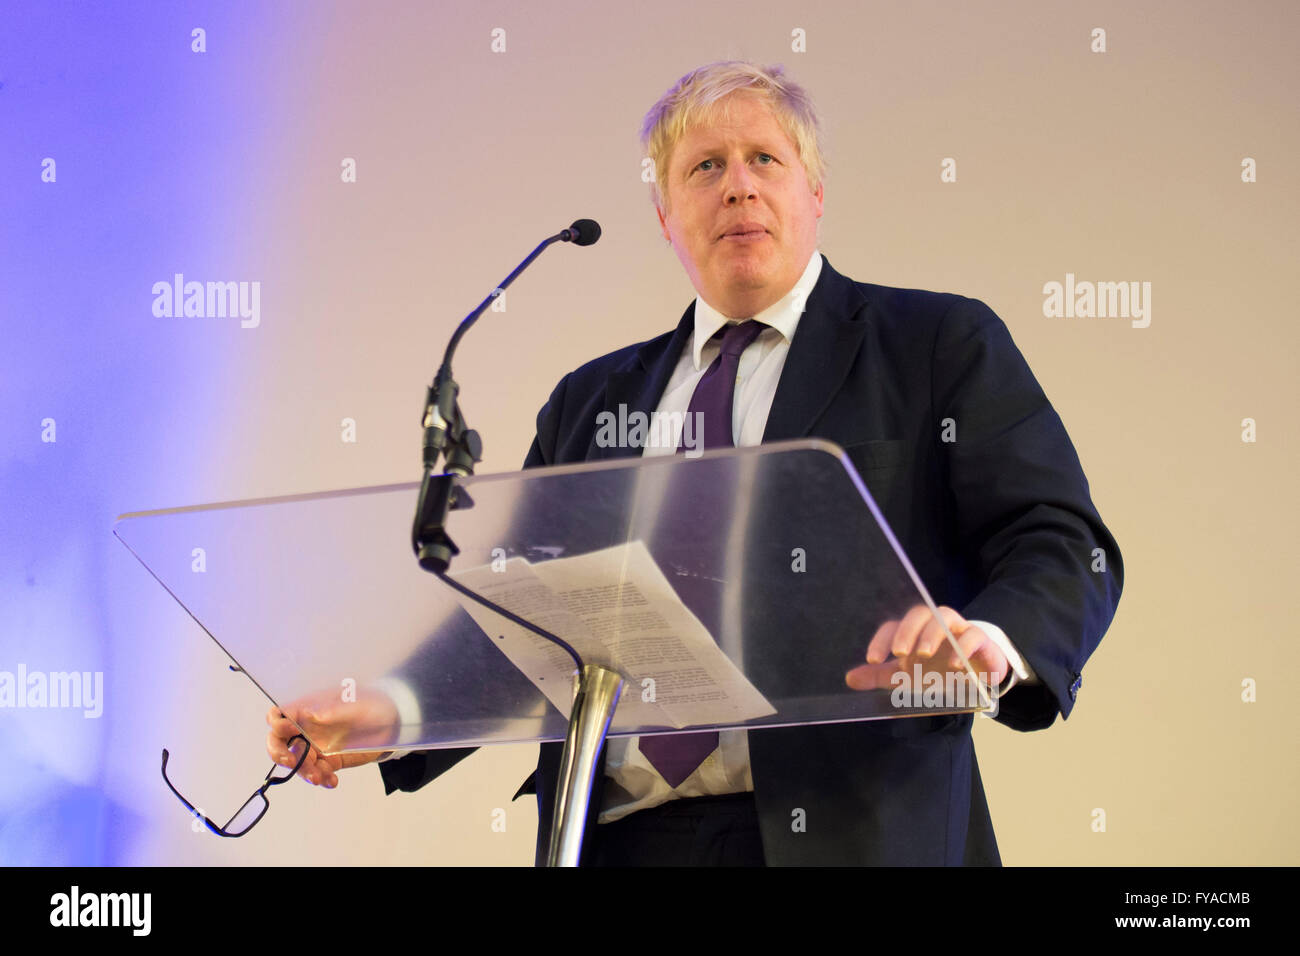 Boris Johnson Conservative MP and former Mayor of London. Boris Johnson campaigned for Britain to leave the EU in - Stock Image